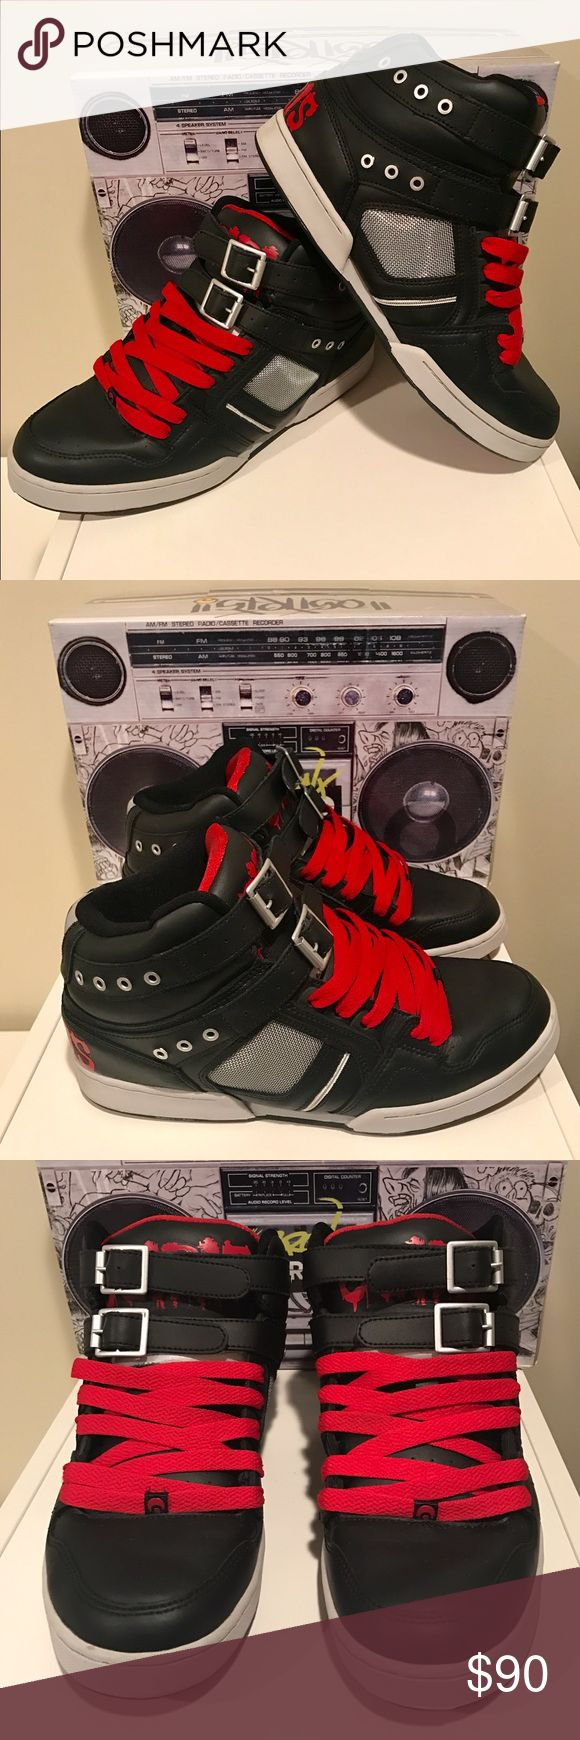 "OSIRIS Bronx ""Bad"" Michael Jackson Shoe These Bronx ""Bad"" shoes are inspired by Michael Jacksons song ""Bad"".  They feature black straps with buckles and silver mesh side panels.  They are a must have for your collection. EUC. Very Rare. Comes in original box. No Trades. Osiris Shoes Sneakers"